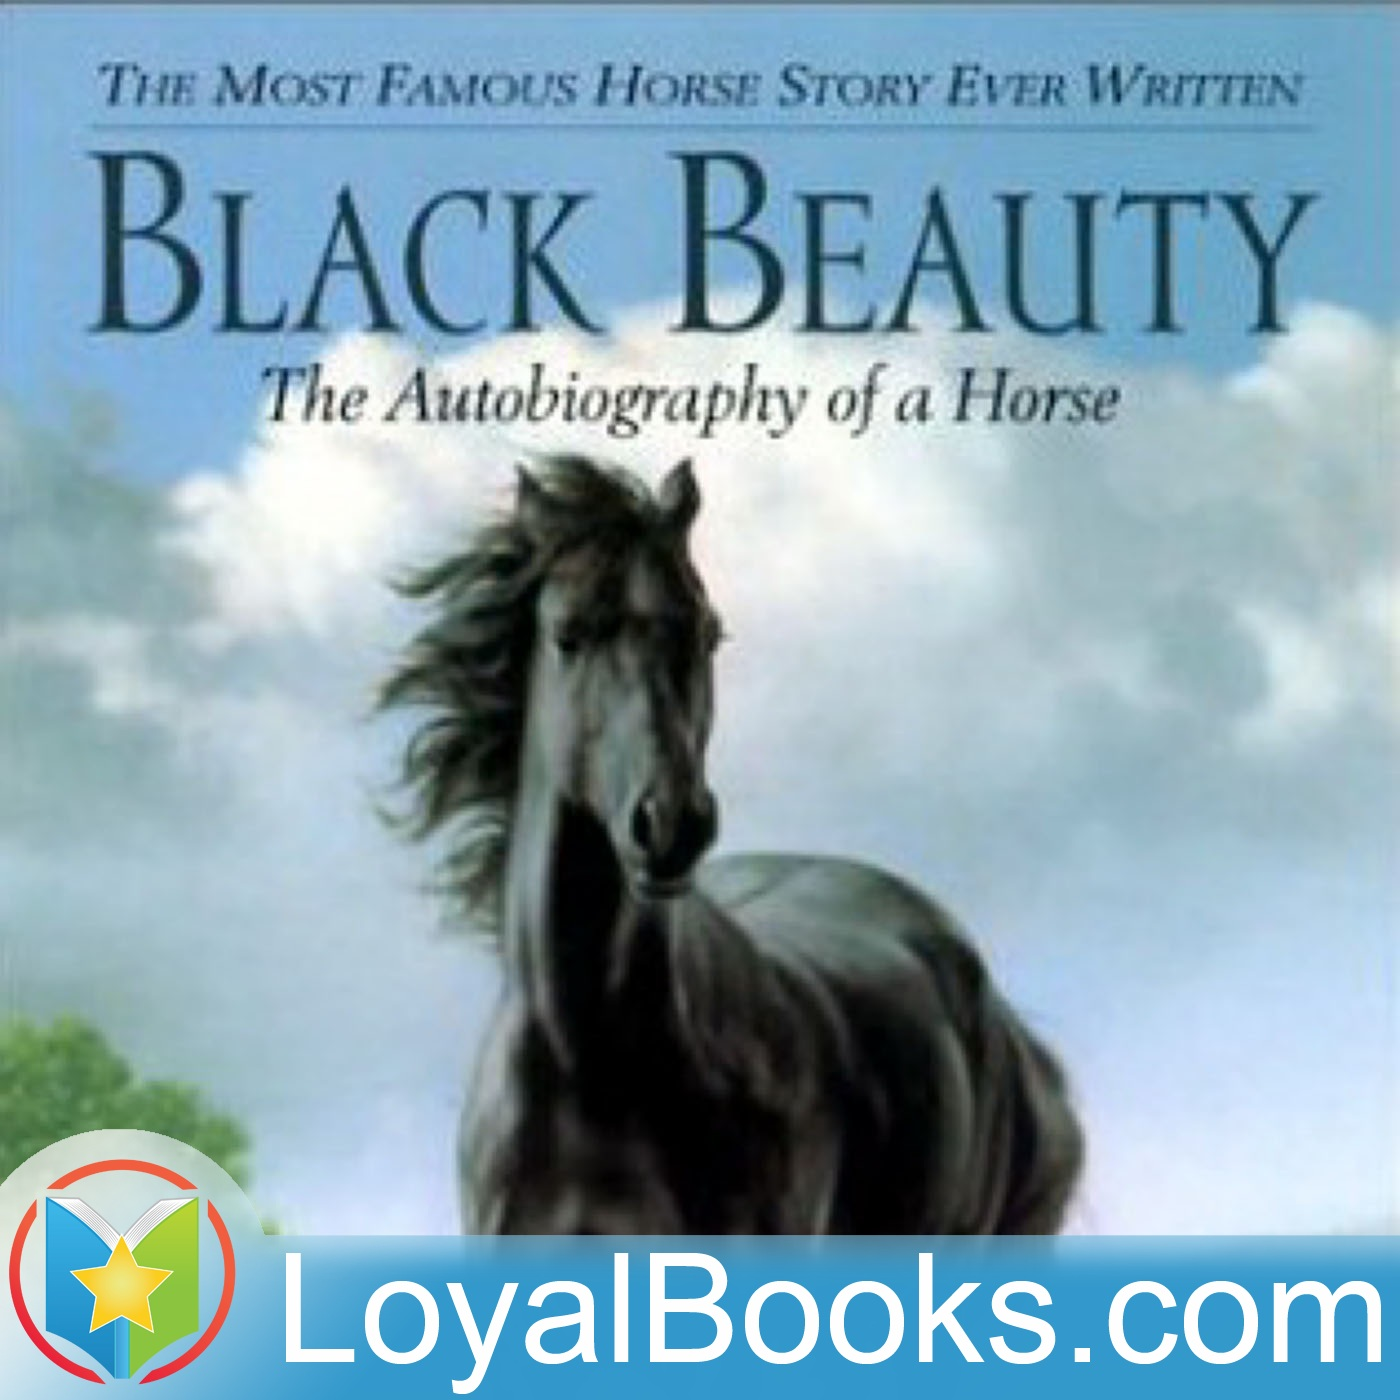 <![CDATA[Black Beauty by Anna Sewell]]>